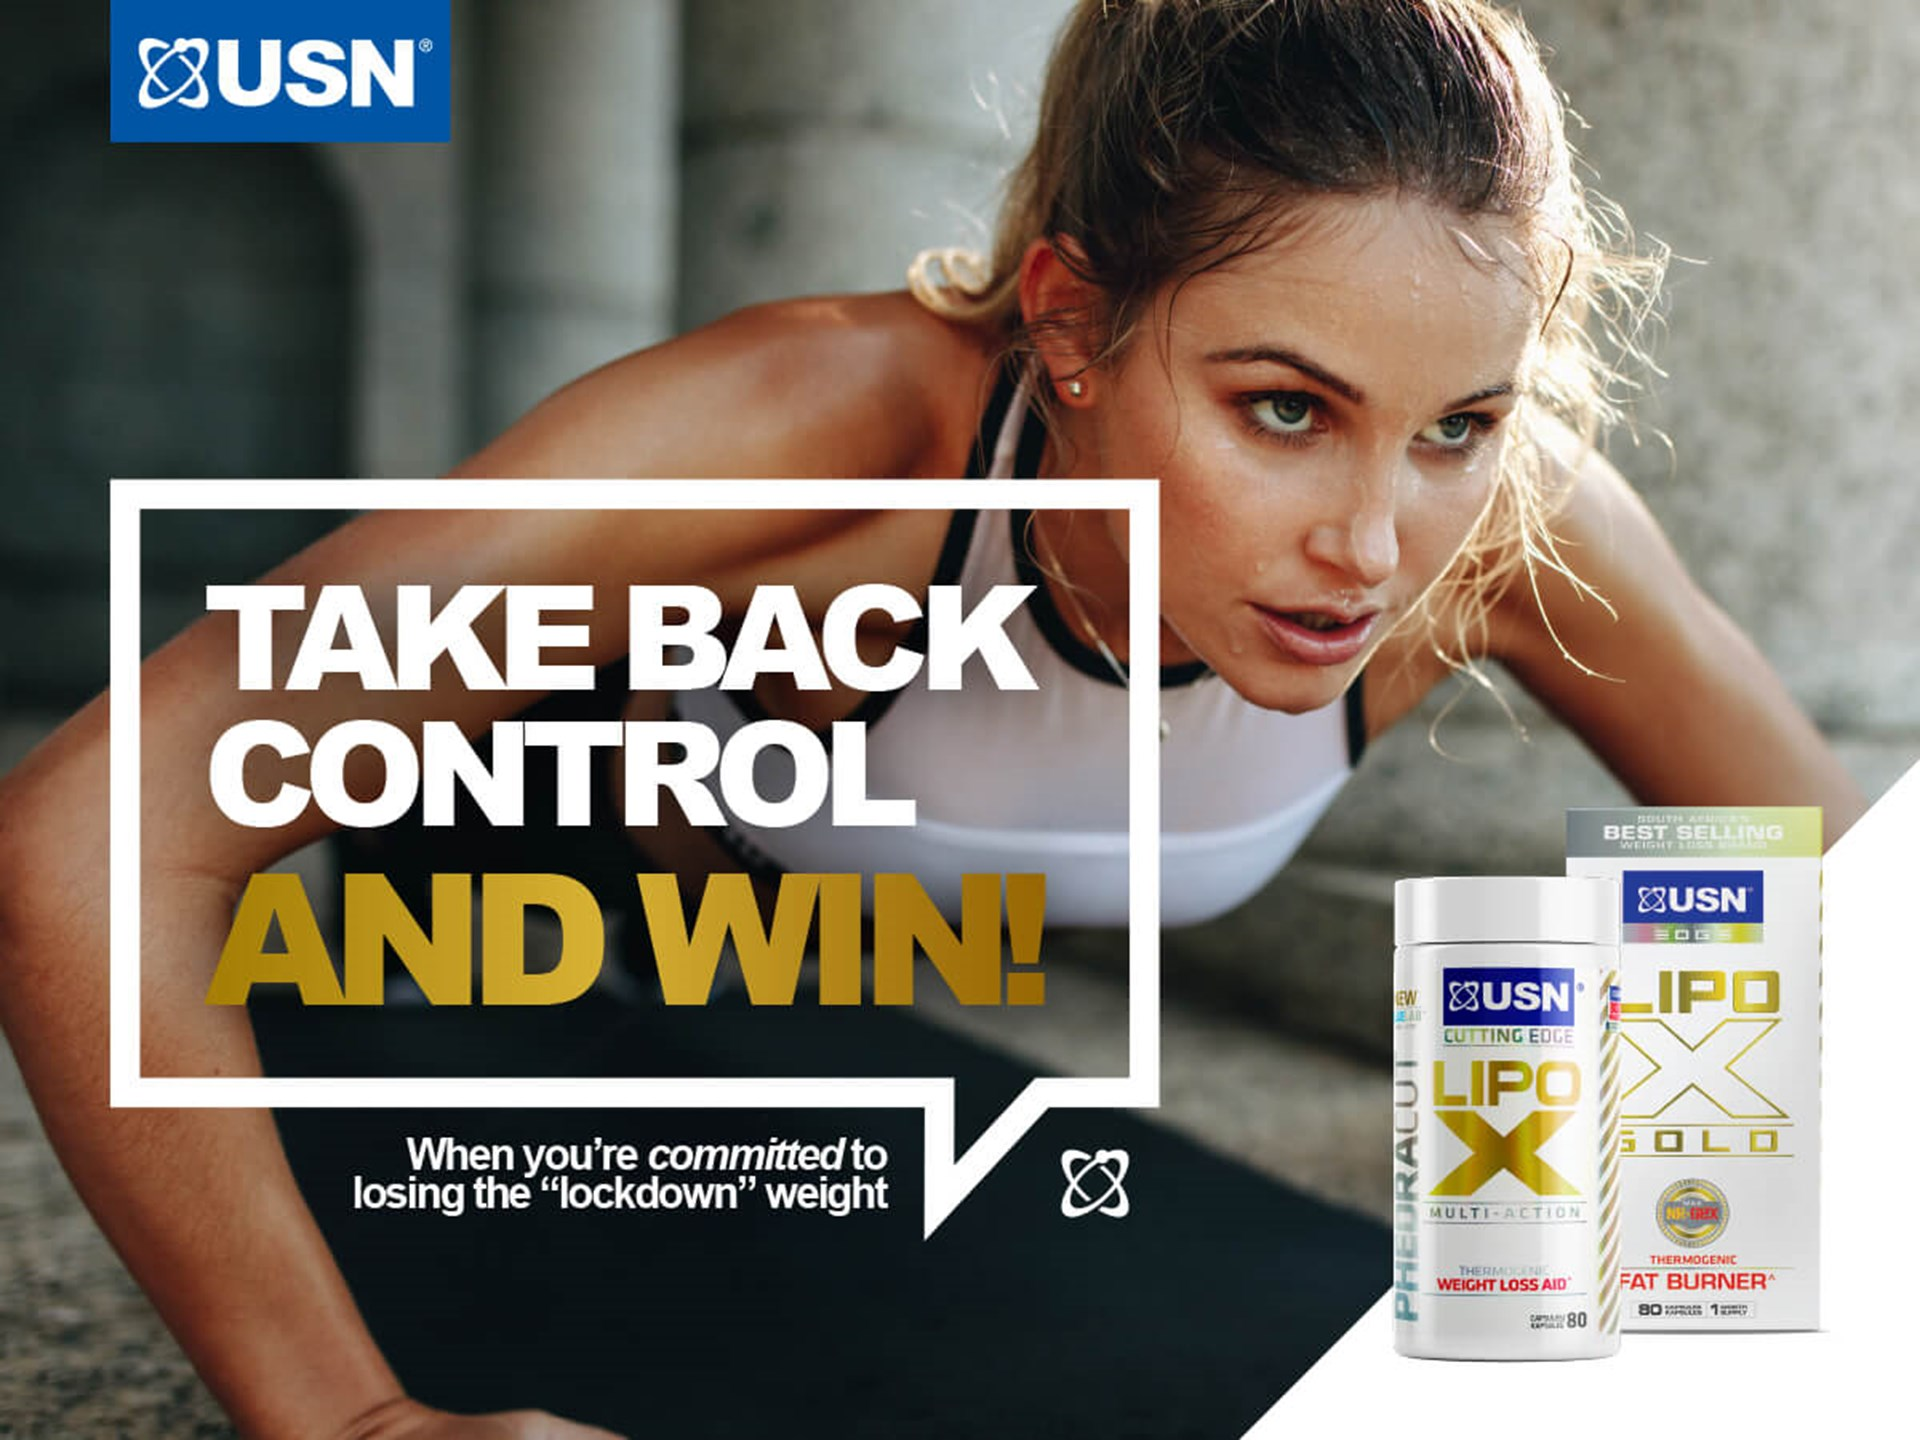 WIN WITH USN AND PHEDRACUT